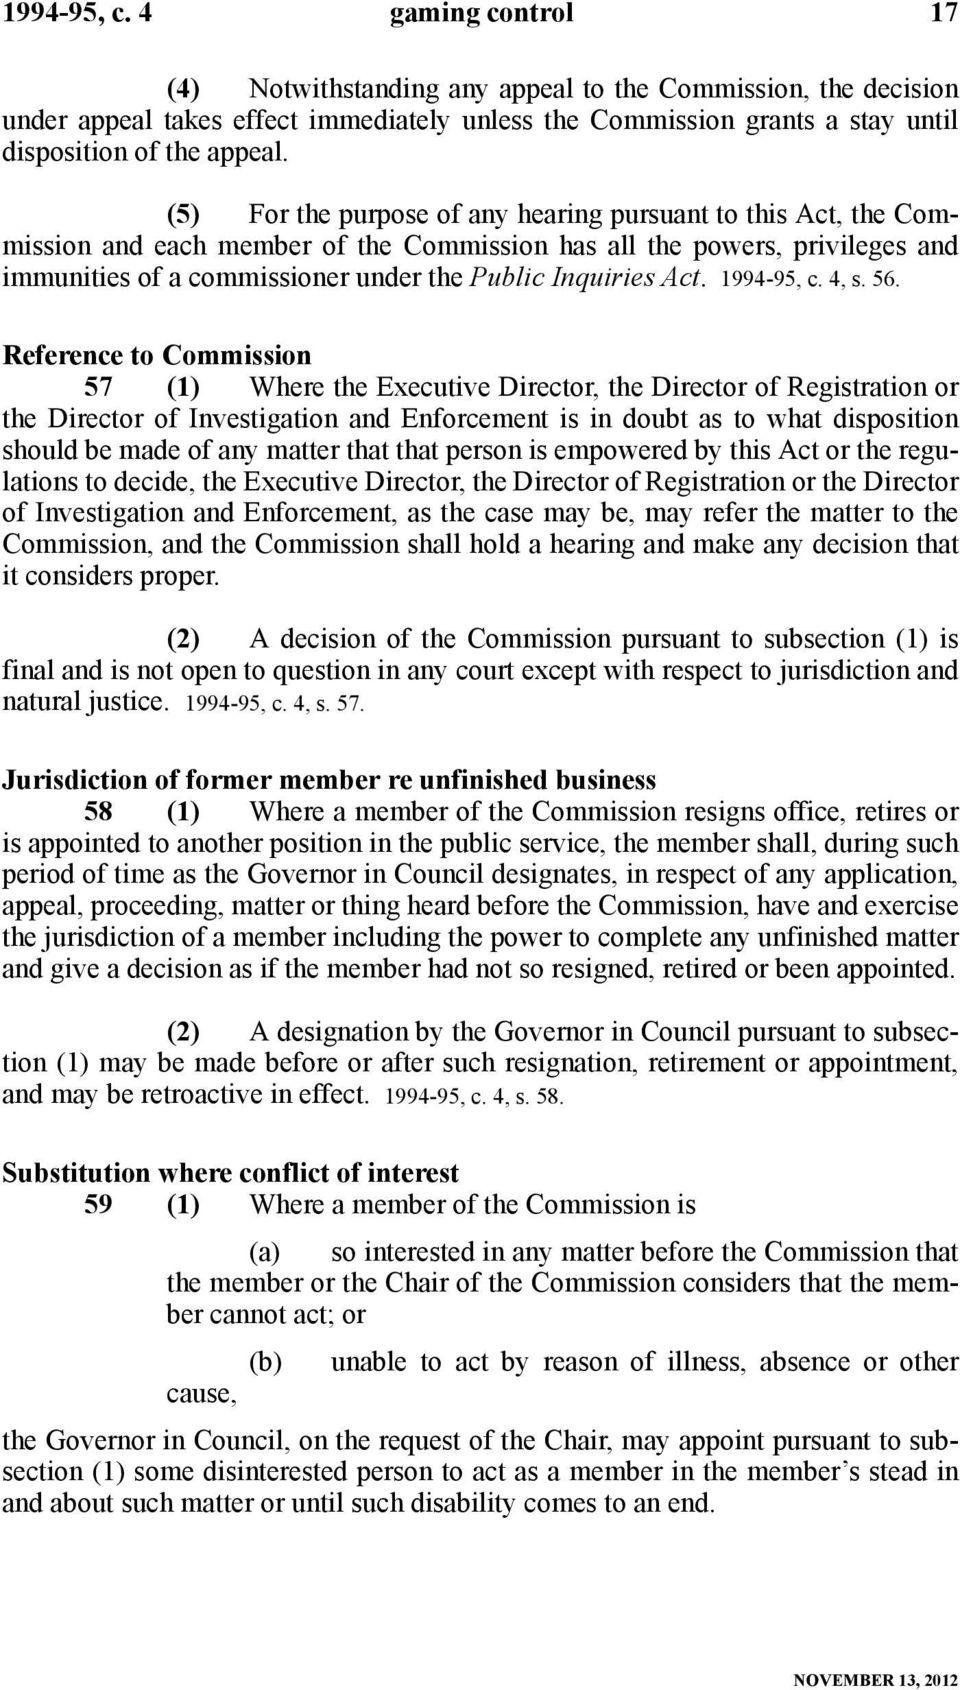 (5) For the purpose of any hearing pursuant to this Act, the Commission and each member of the Commission has all the powers, privileges and immunities of a commissioner under the Public Inquiries